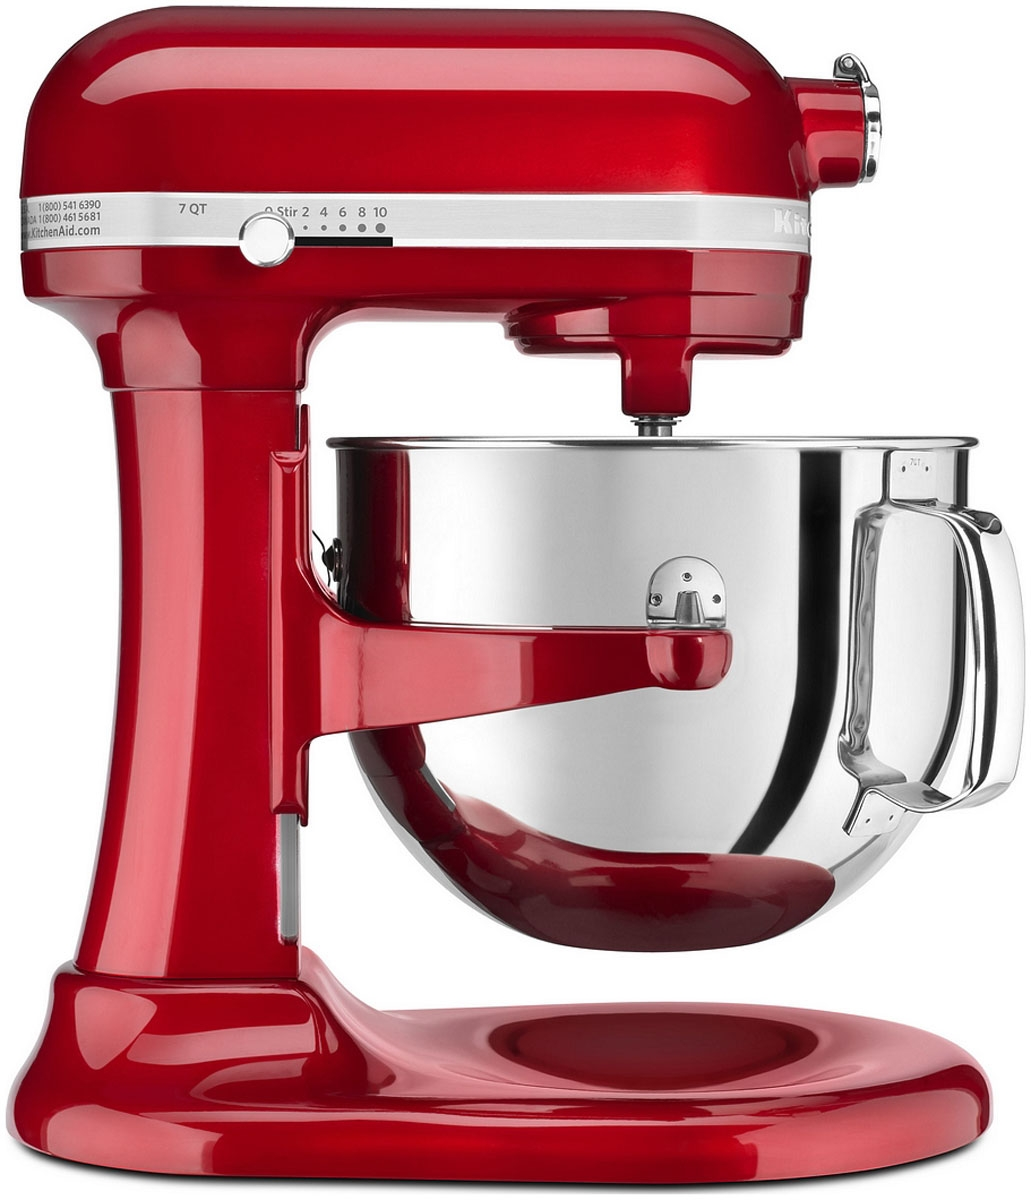 Kitchenaid Proline Bowl Lift Red Stand Mixer Ksm7586pca